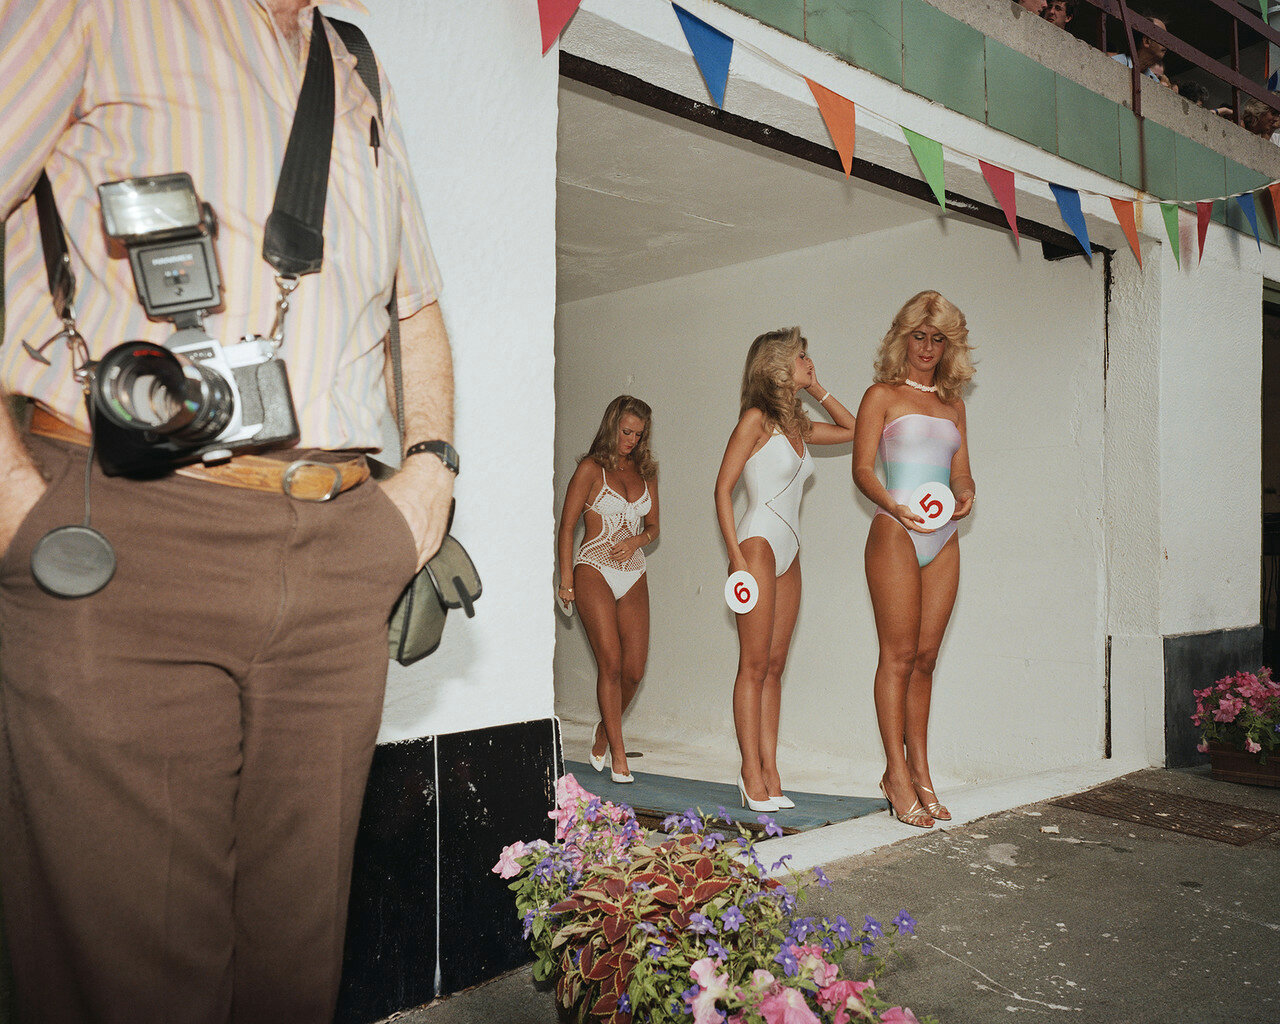 martin parr photo essay Posts about martin parr written by karin gottschalk tag: martin parr mastin labs: what is a photo essay.